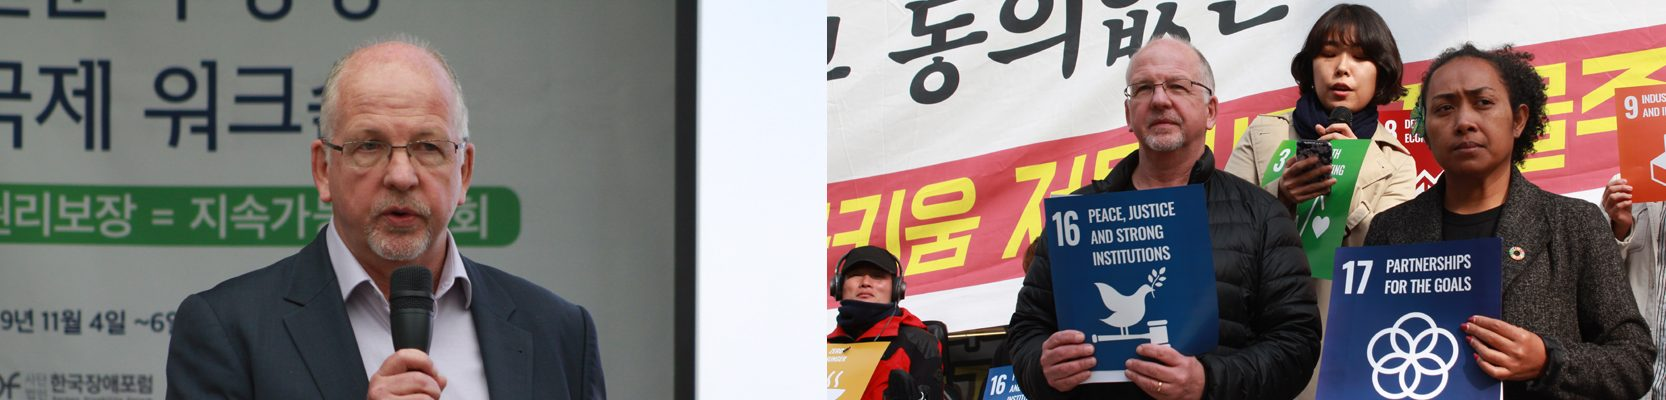 Two photographic images: 1. Michael Bleasdale from R&IA is speaking into a microphone at a rights workshop in Seoul, Korea. He is wearing a simultaneous translation earphone. 2. Michael Bleasdale from R&IA is standing beside other protesters in front of a large banner with Korean script in downtown Seoul, Korea. Michael is holding a small placard on which is written the text of one of the Sustainable Development Goals.